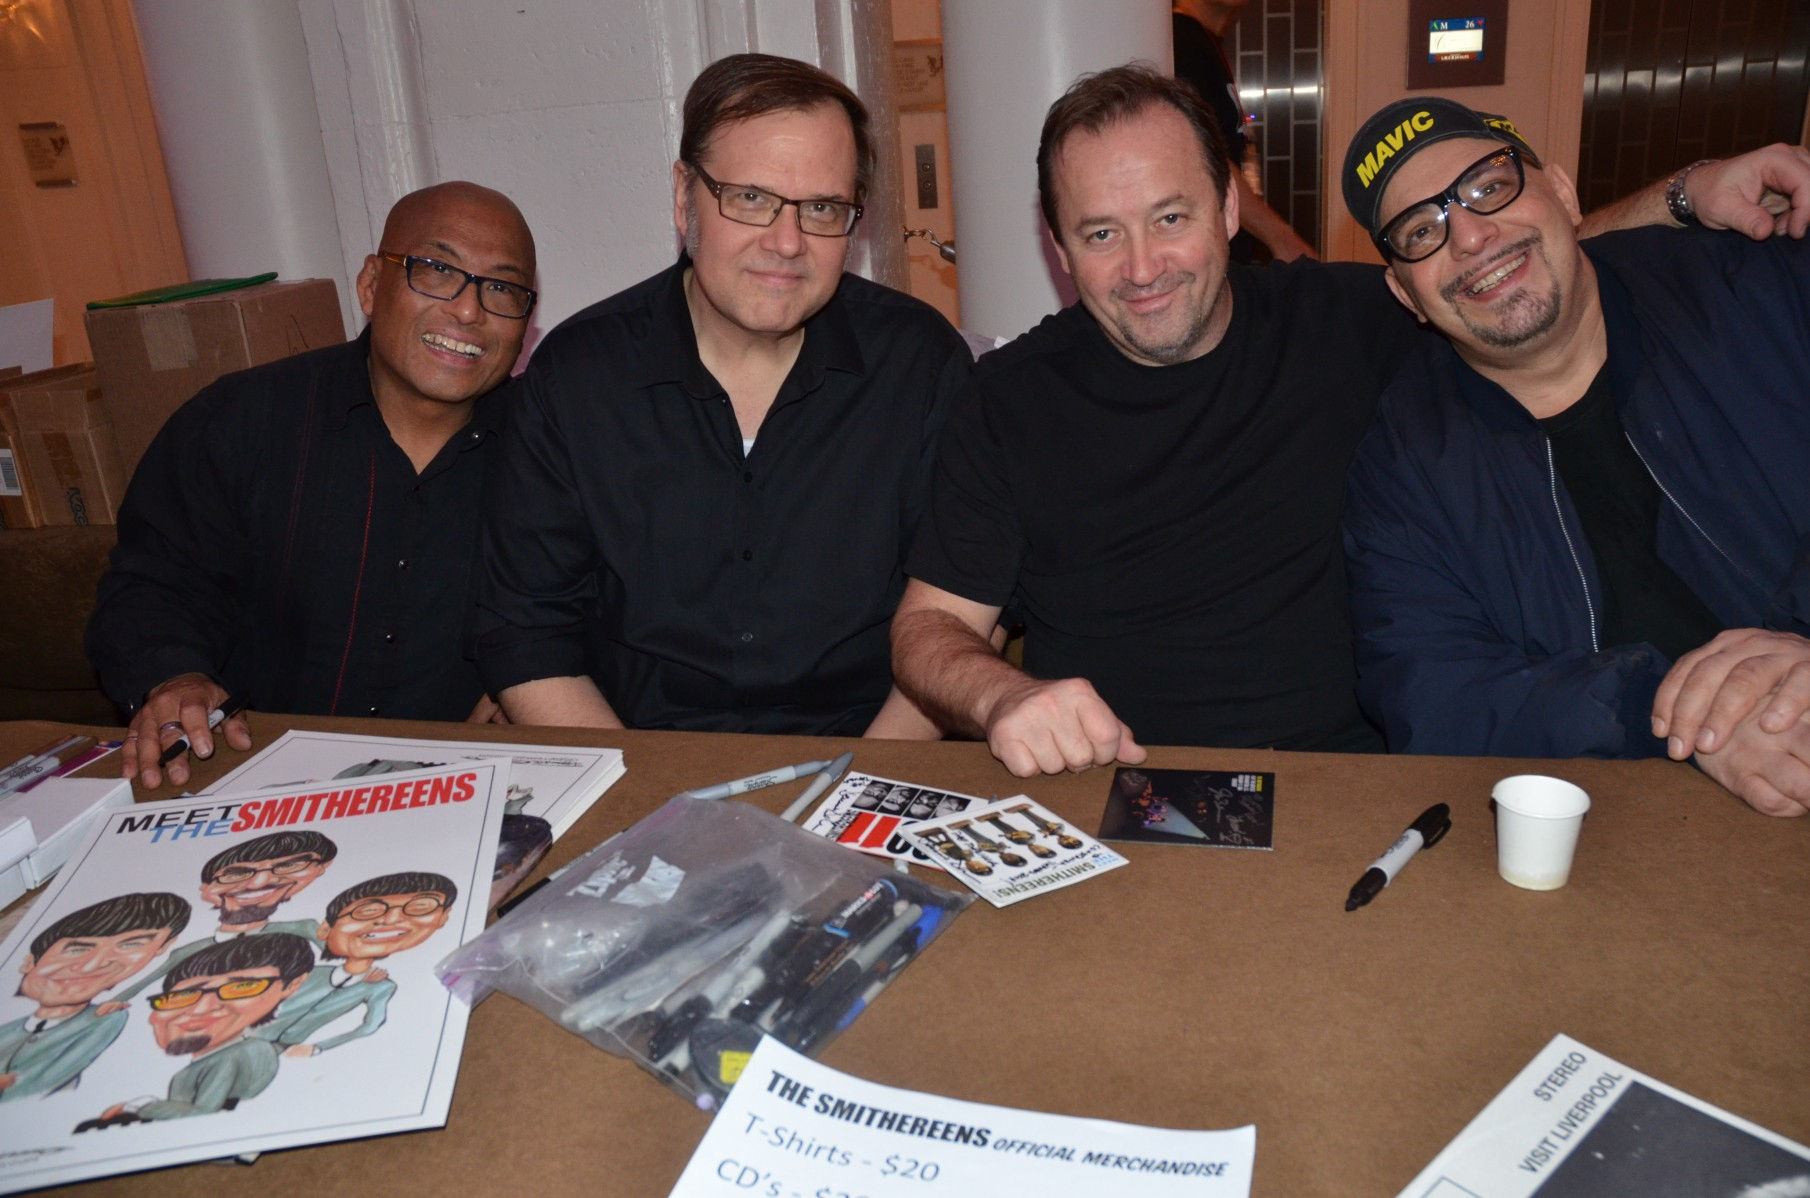 On Sunday, The Smithereens recreated the Beatles' iconic 1964 Washington Coliseum concert.